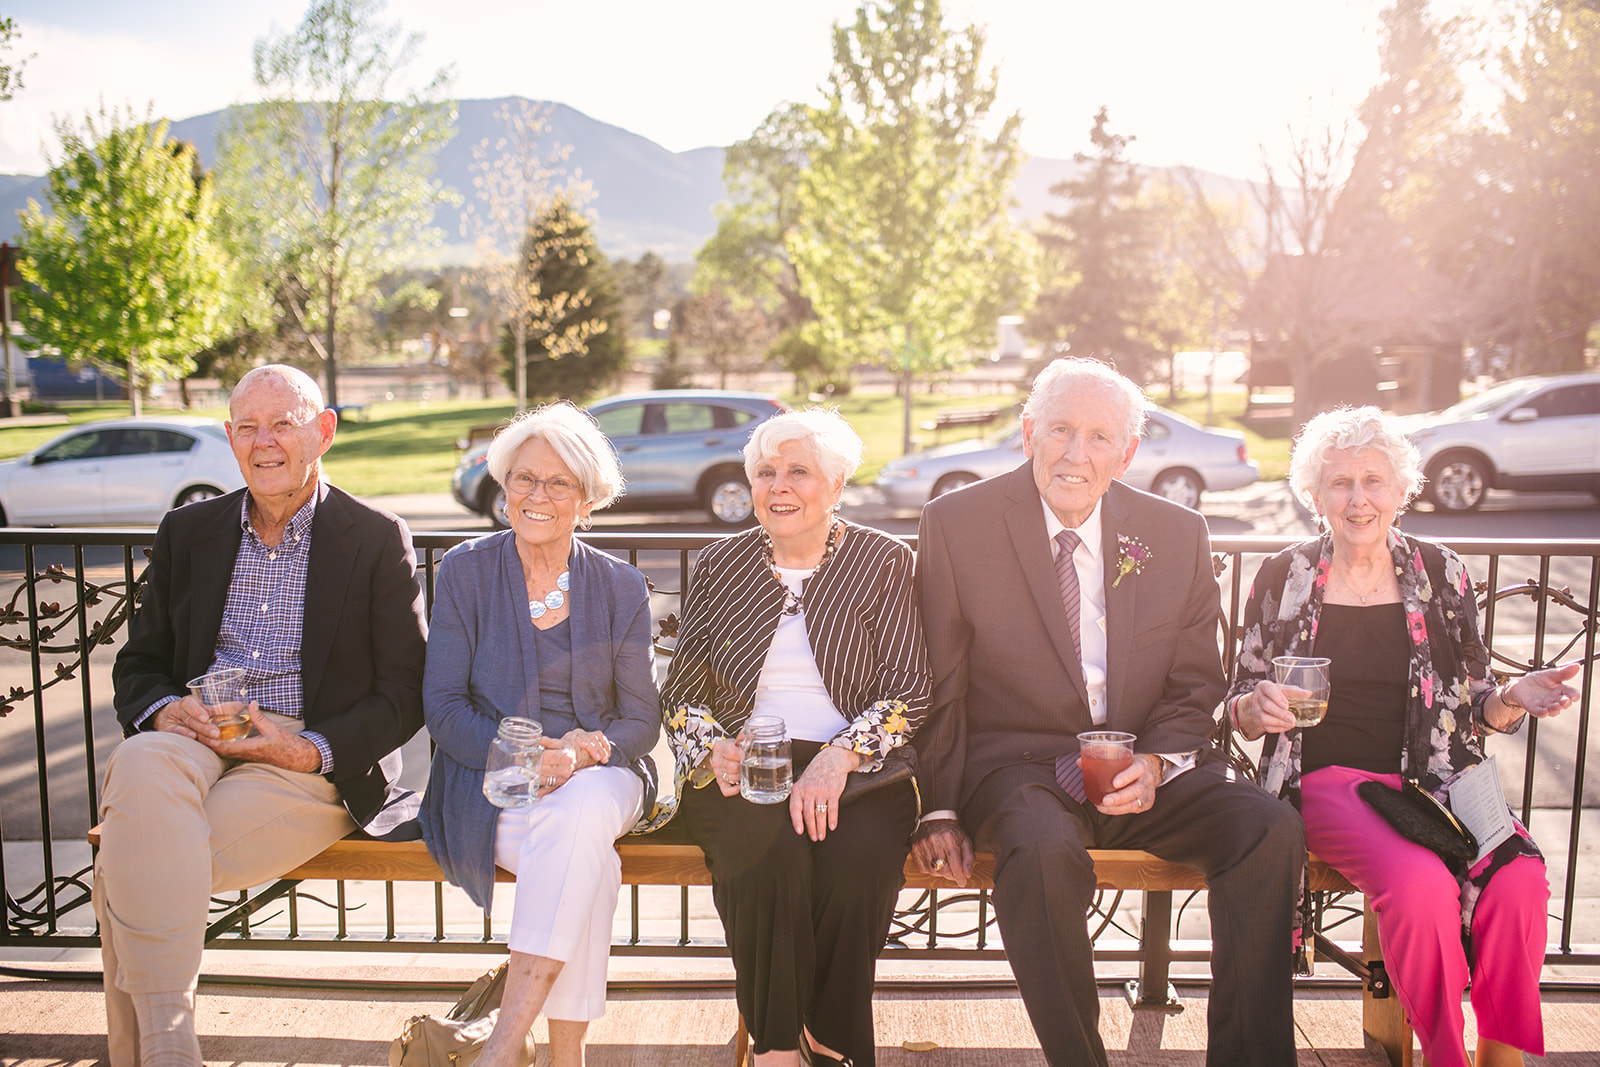 Hearth House Wedding DBK Photography Hearth House